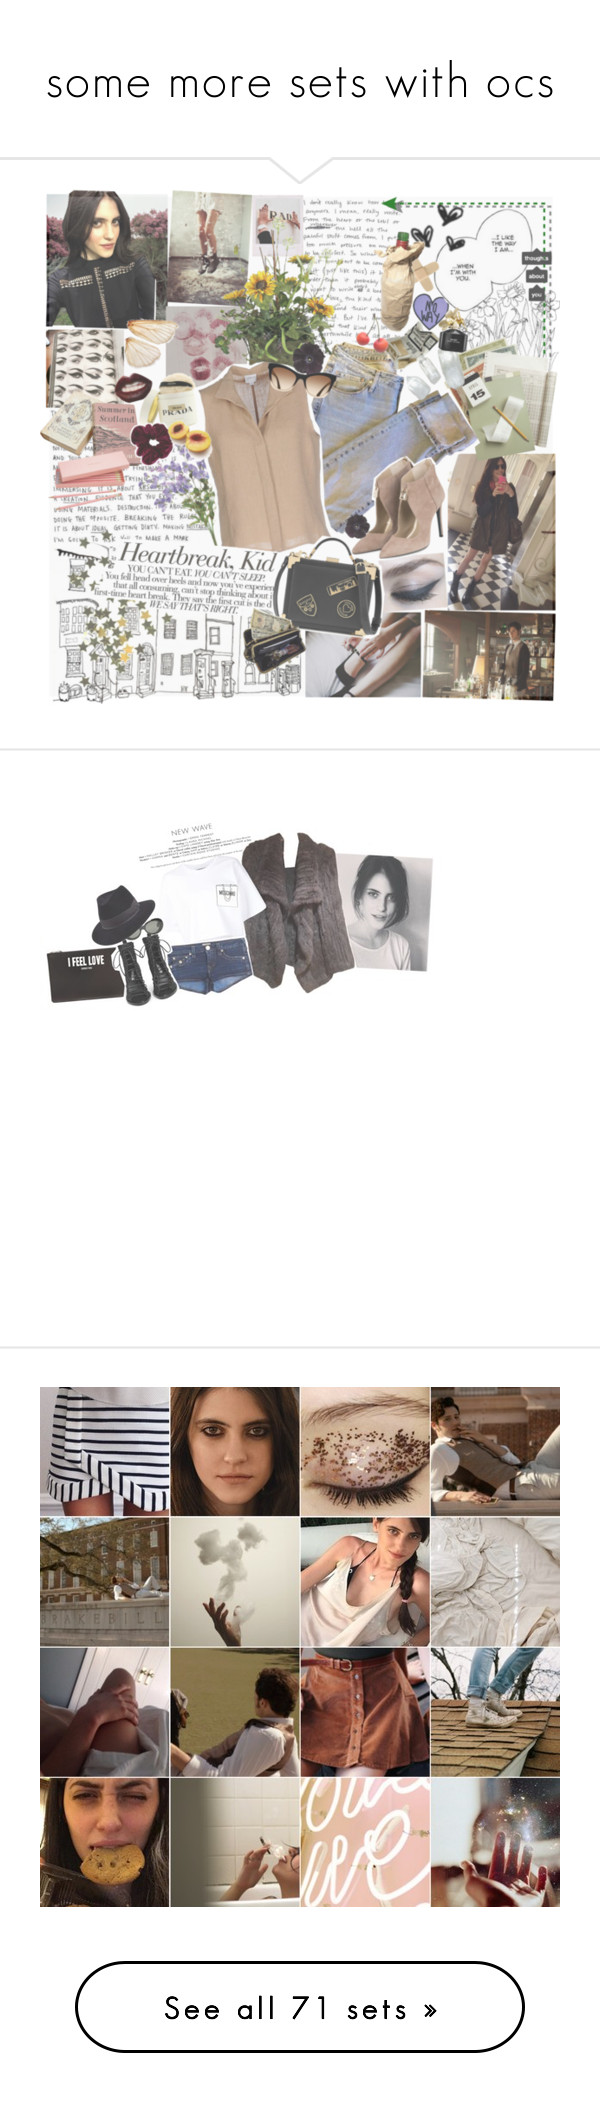 """""""some more sets with ocs"""" by i-love-stan-the-man ❤ liked on Polyvore featuring Prada, Vision, Ødd., Armani Collezioni, Karl Lagerfeld, Aspinal of London, Manic Panic, AmeriLeather, Marc Jacobs and Givenchy"""